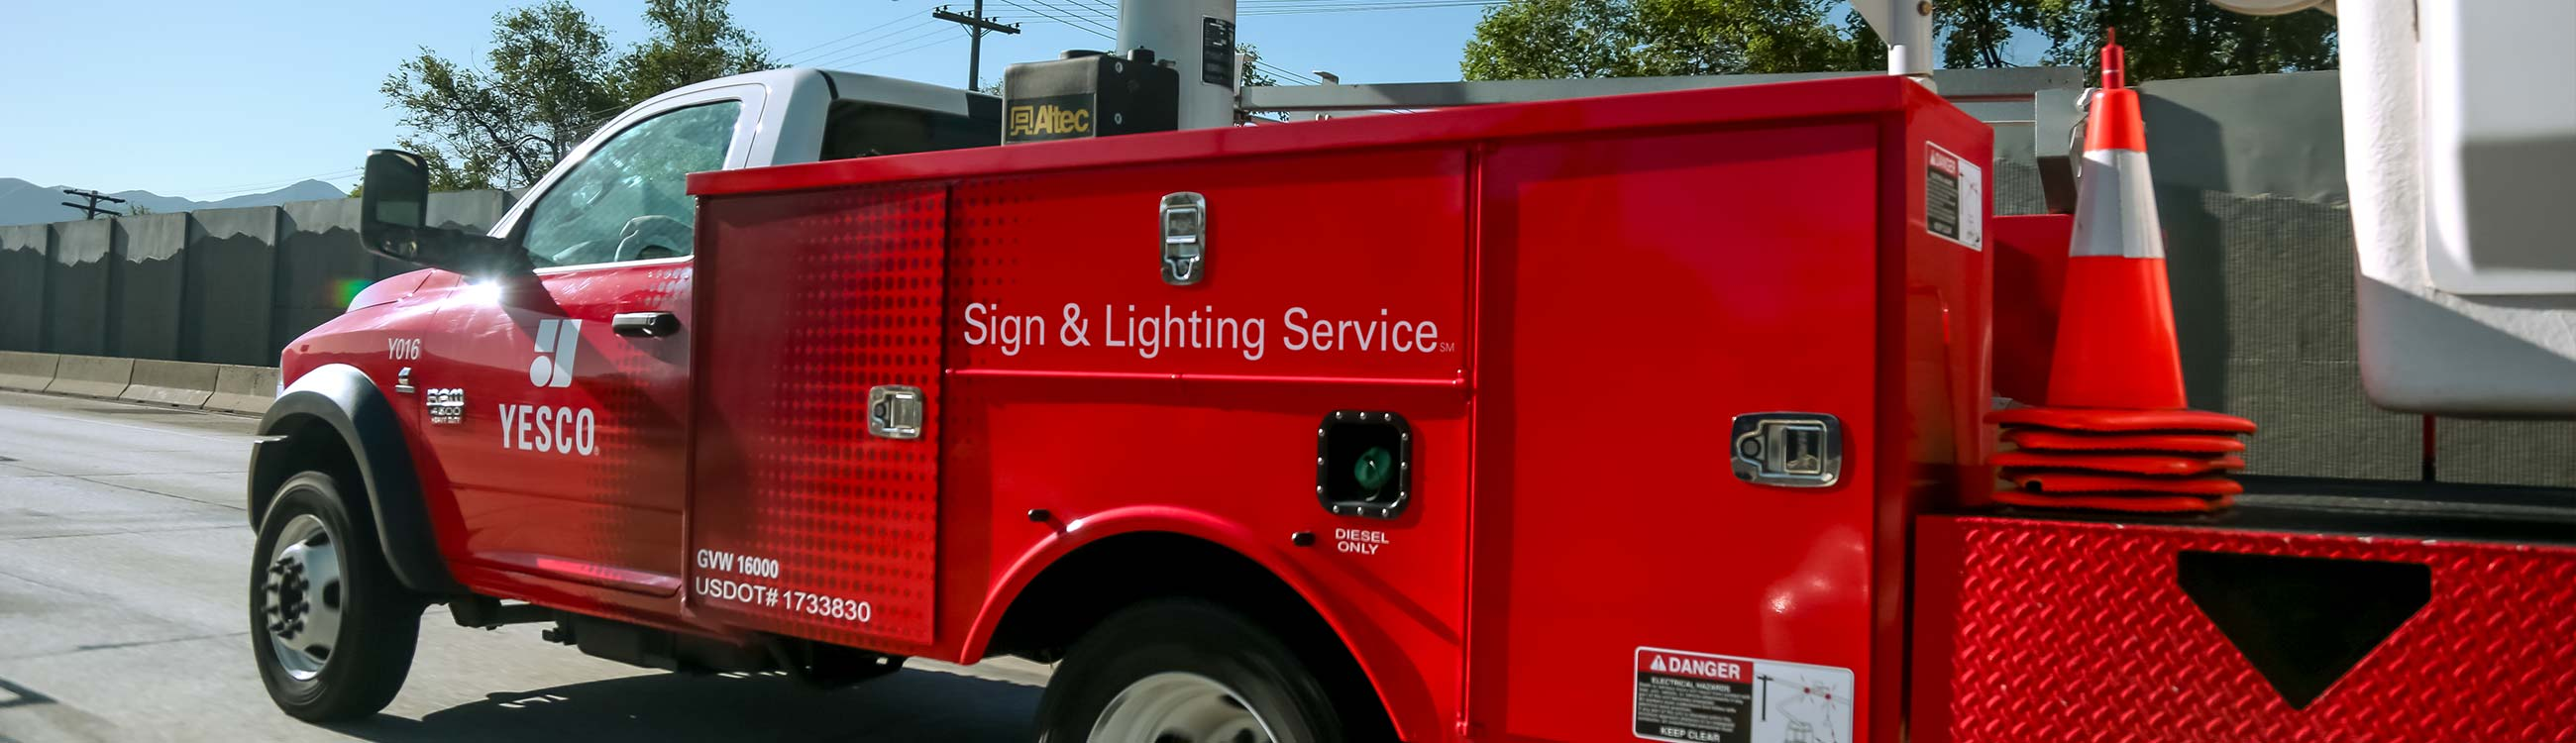 Sign & Lighting Service St. George